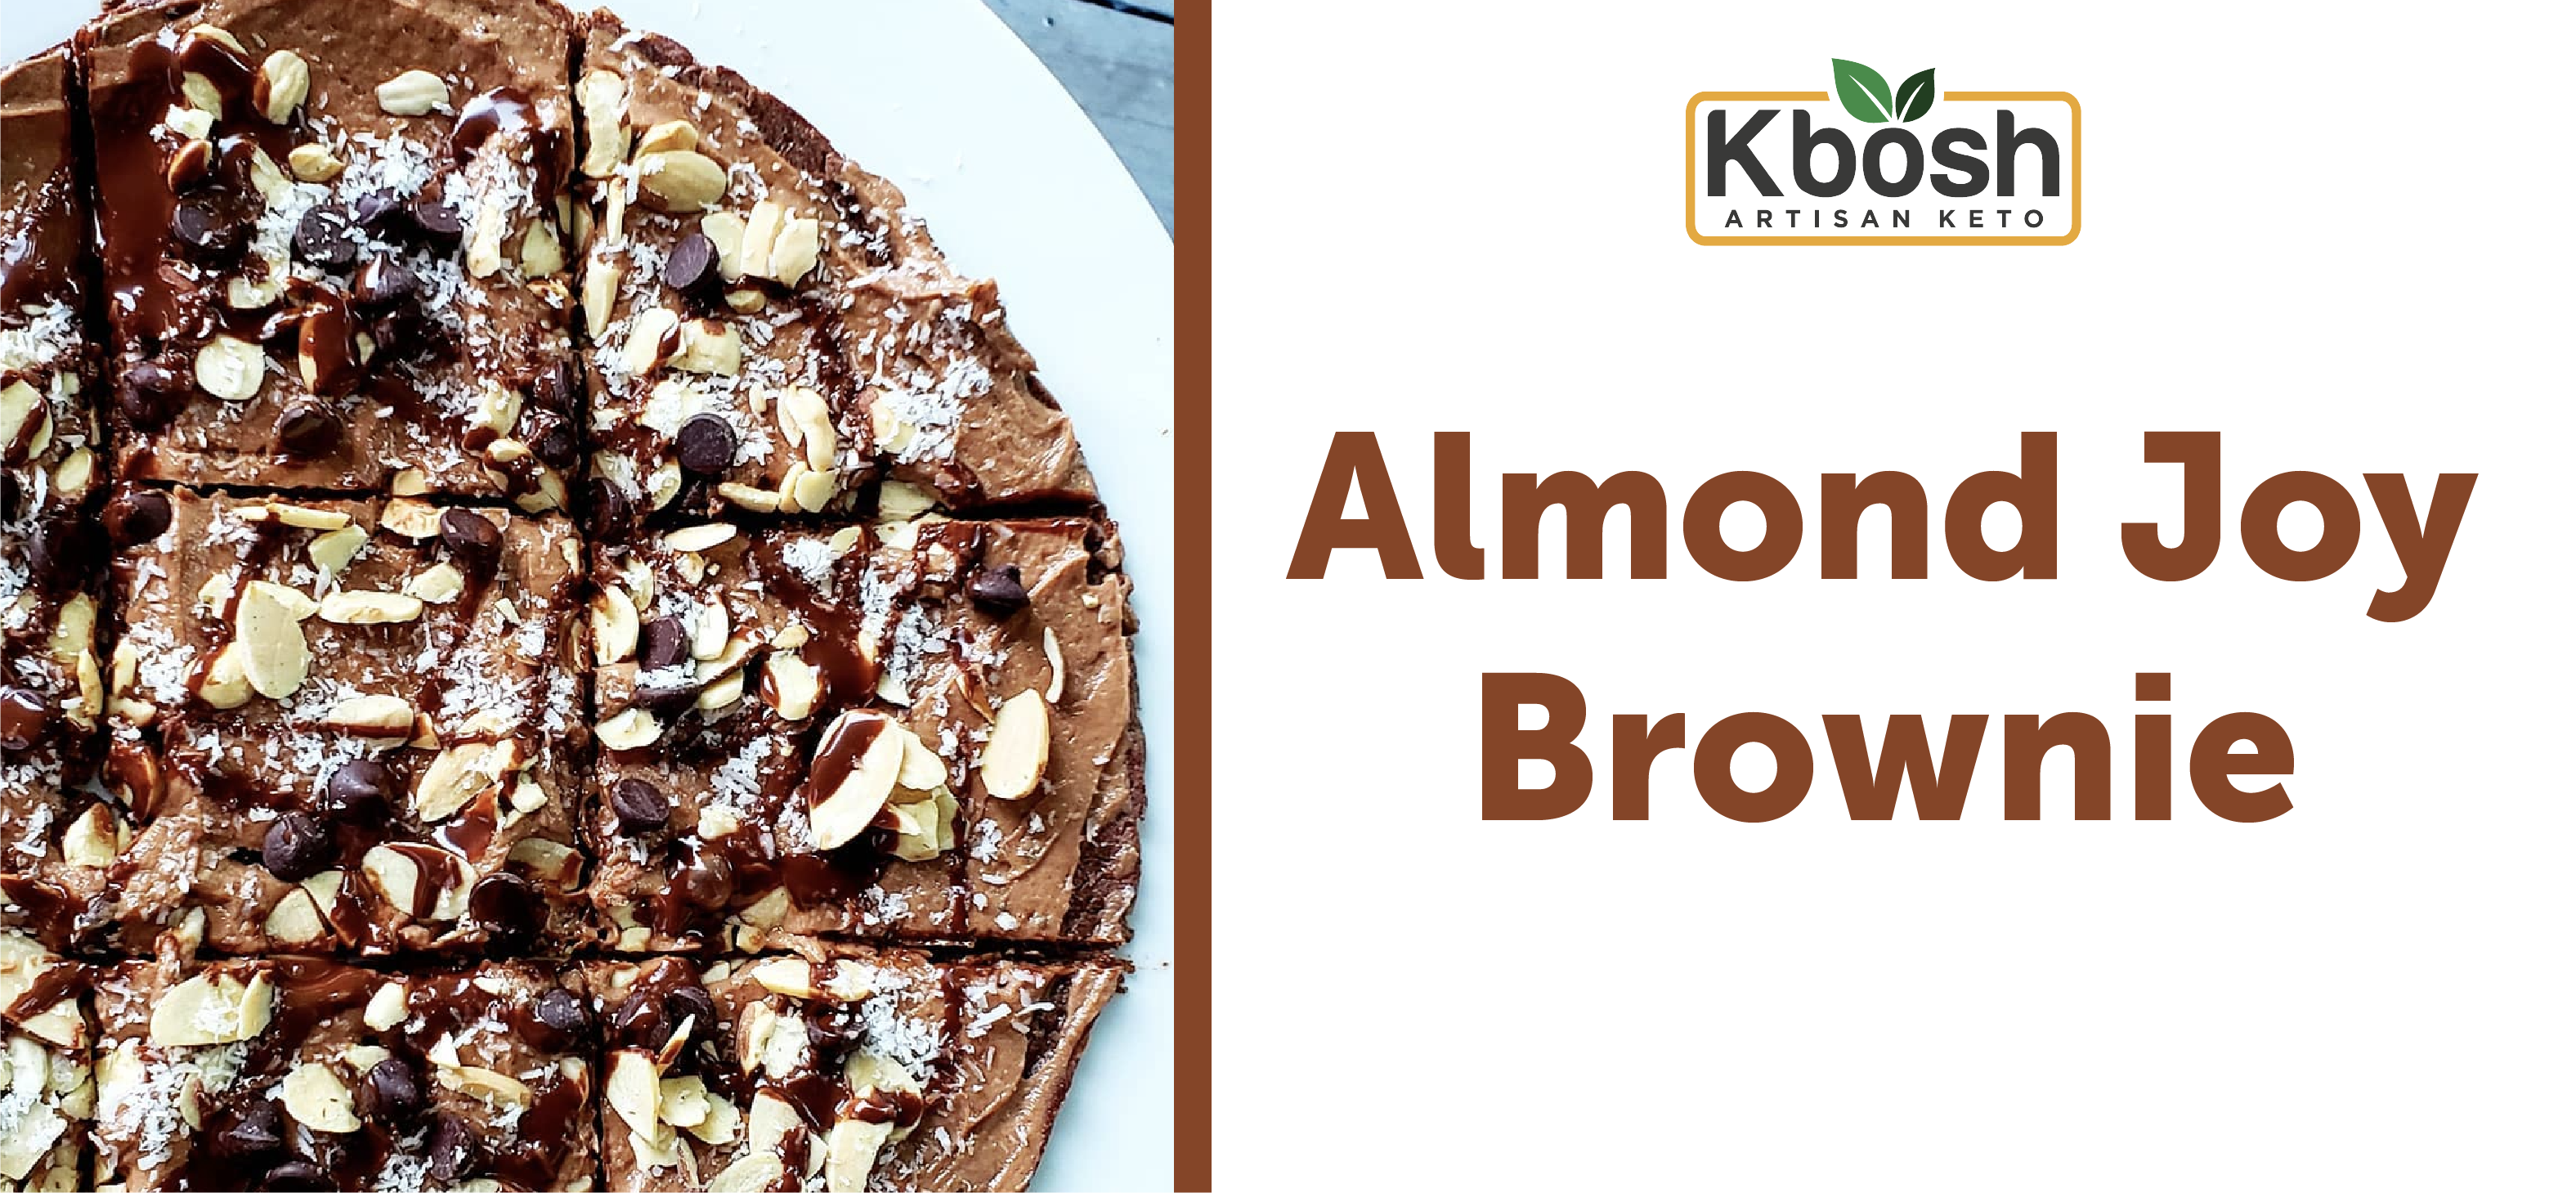 Almond Joy Brownie on Chocolate Zucchini Crust